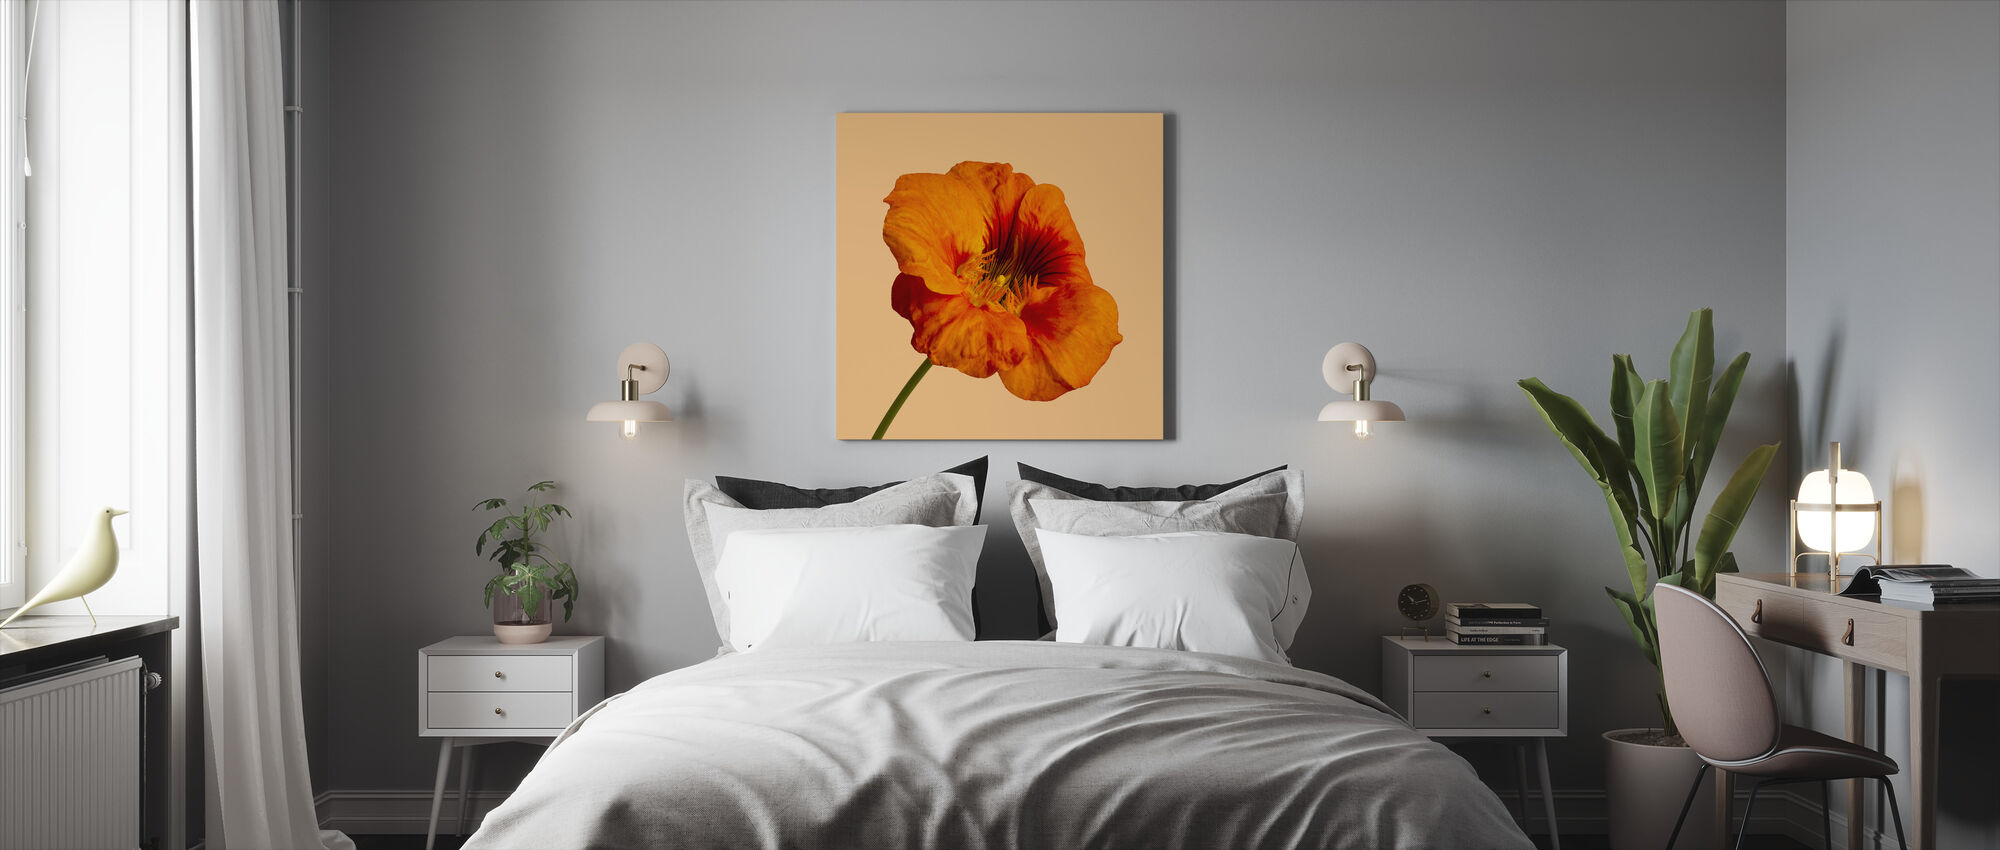 Blooming Hibiscus - Canvas print - Bedroom